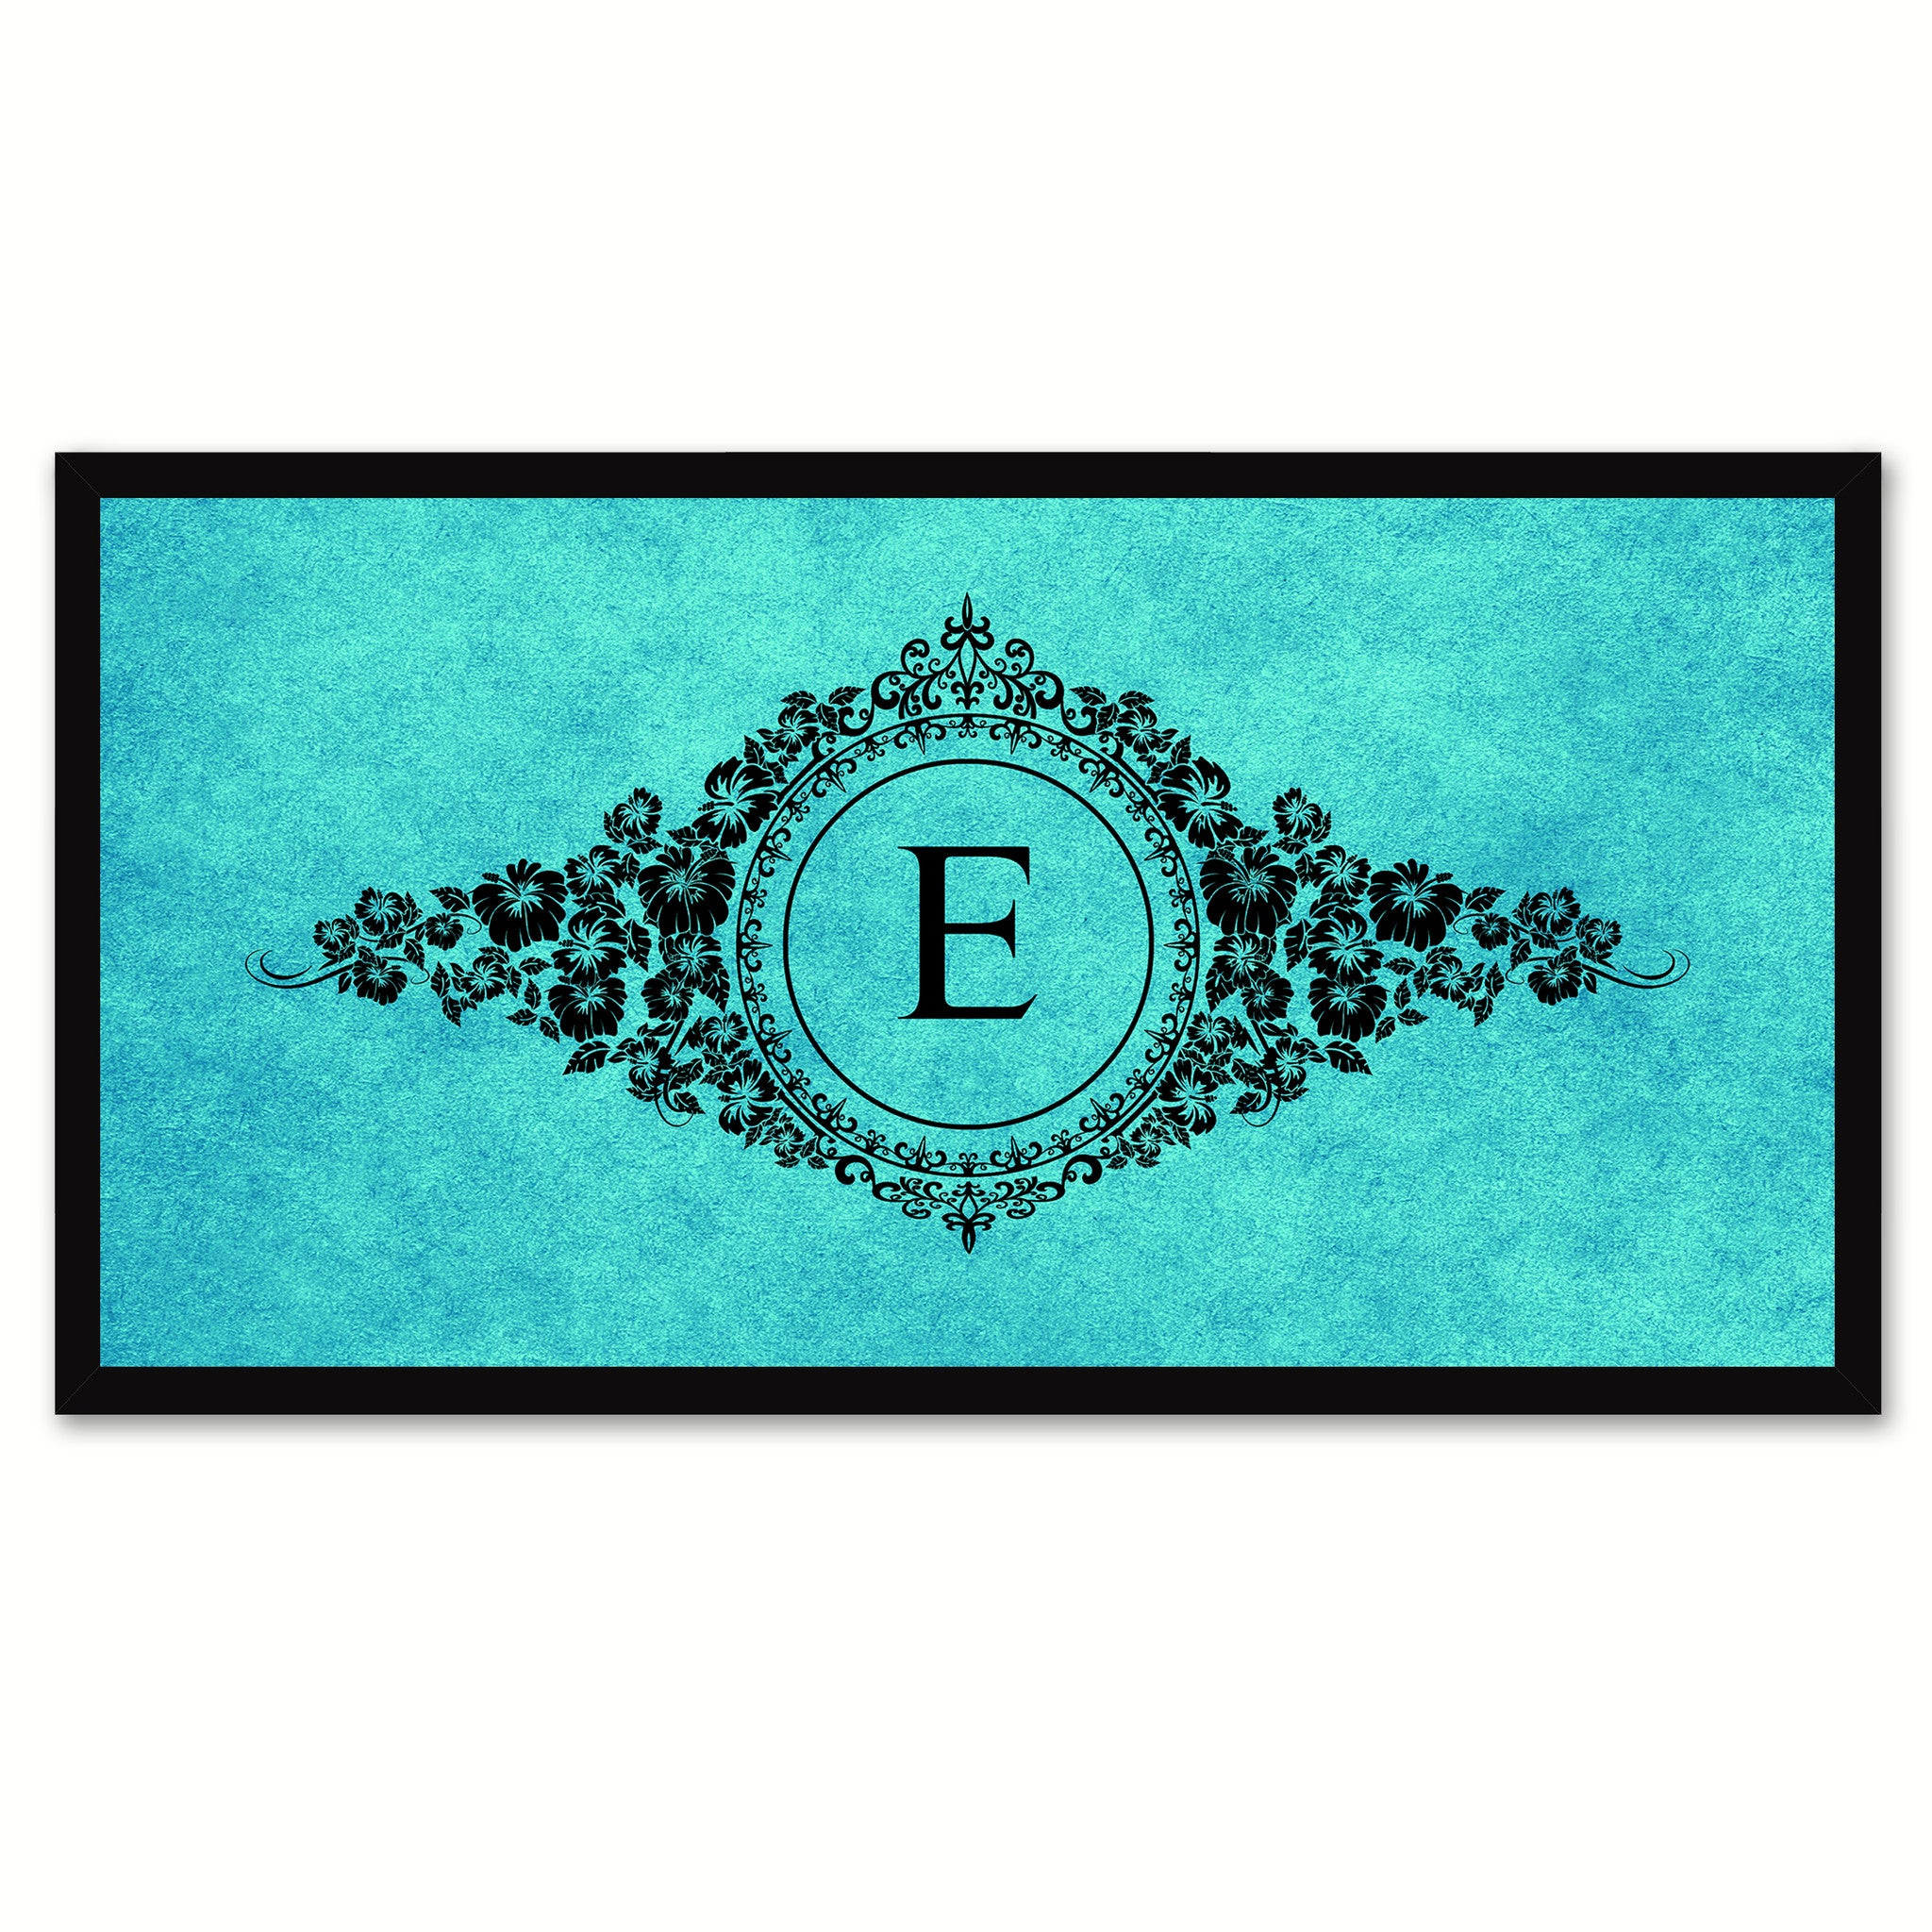 Alphabet Letter E Auqa Canvas Print, Black Custom Frame